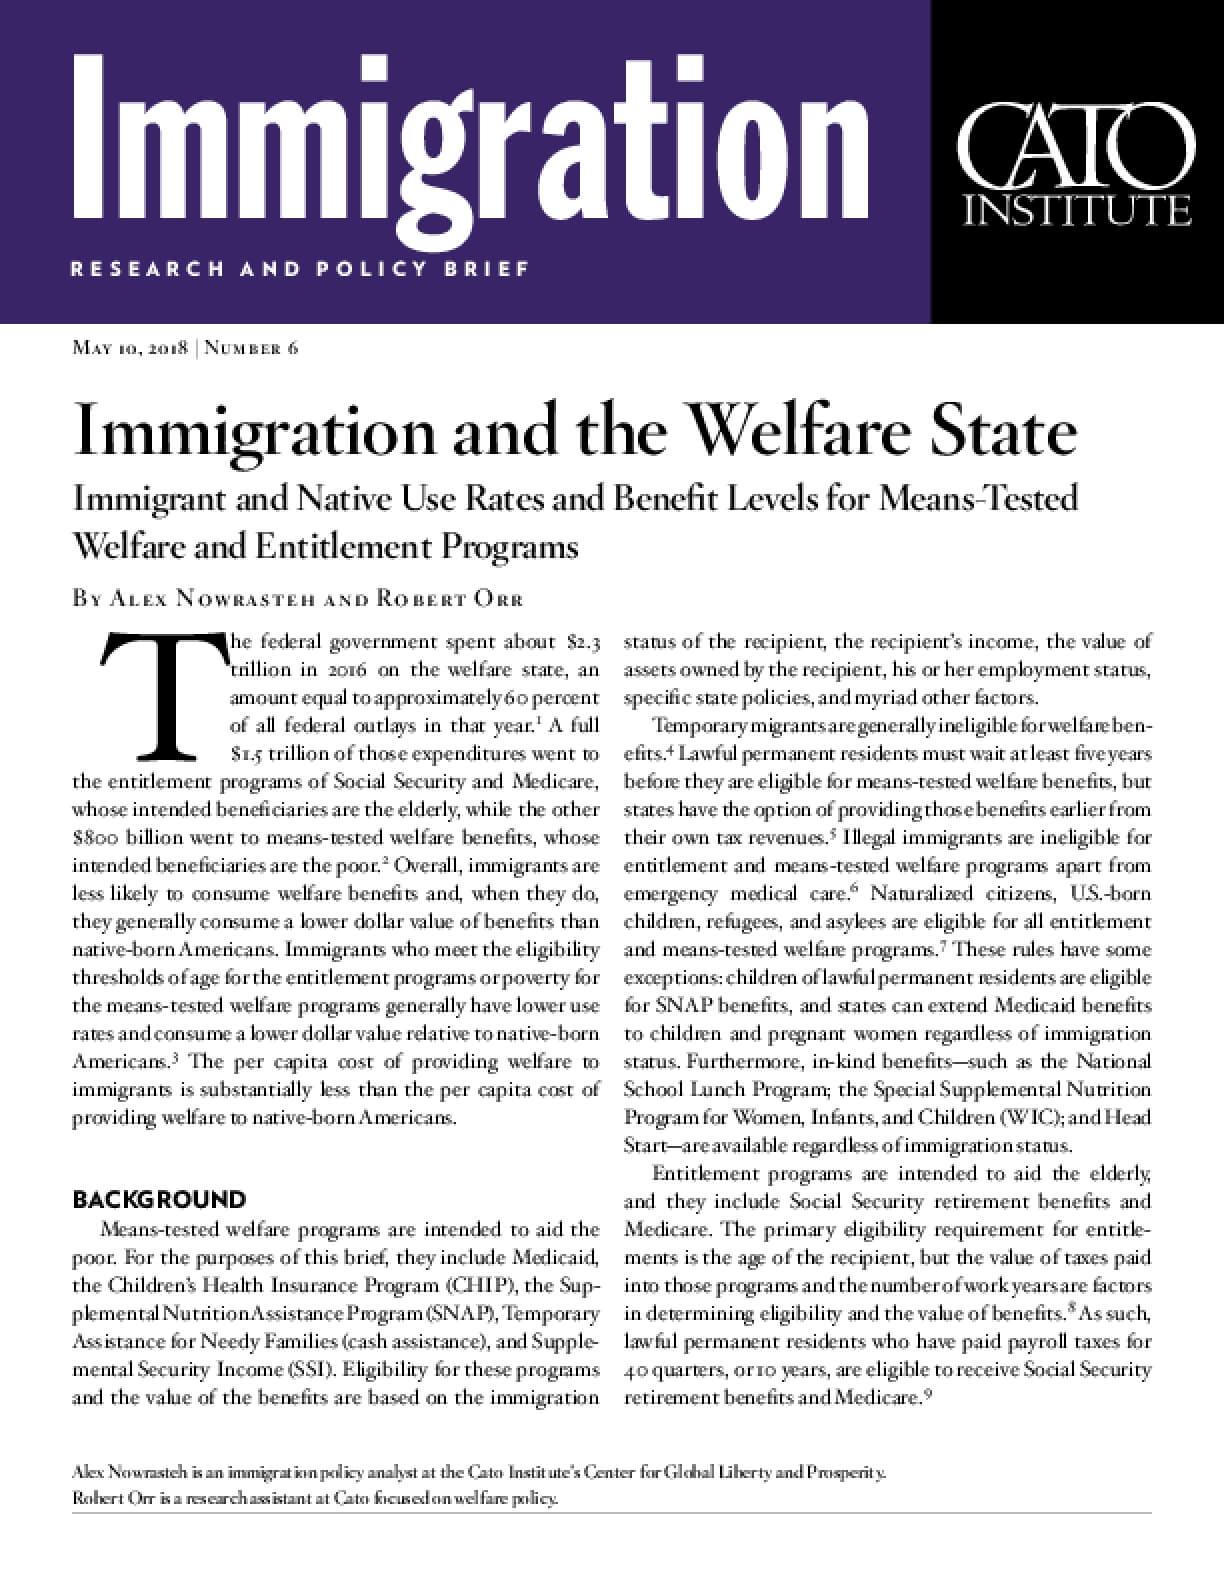 Immigration and the Welfare State: Immigrant and Native Use Rates and Benefit Levels for Means-Tested Welfare and Entitlement Programs